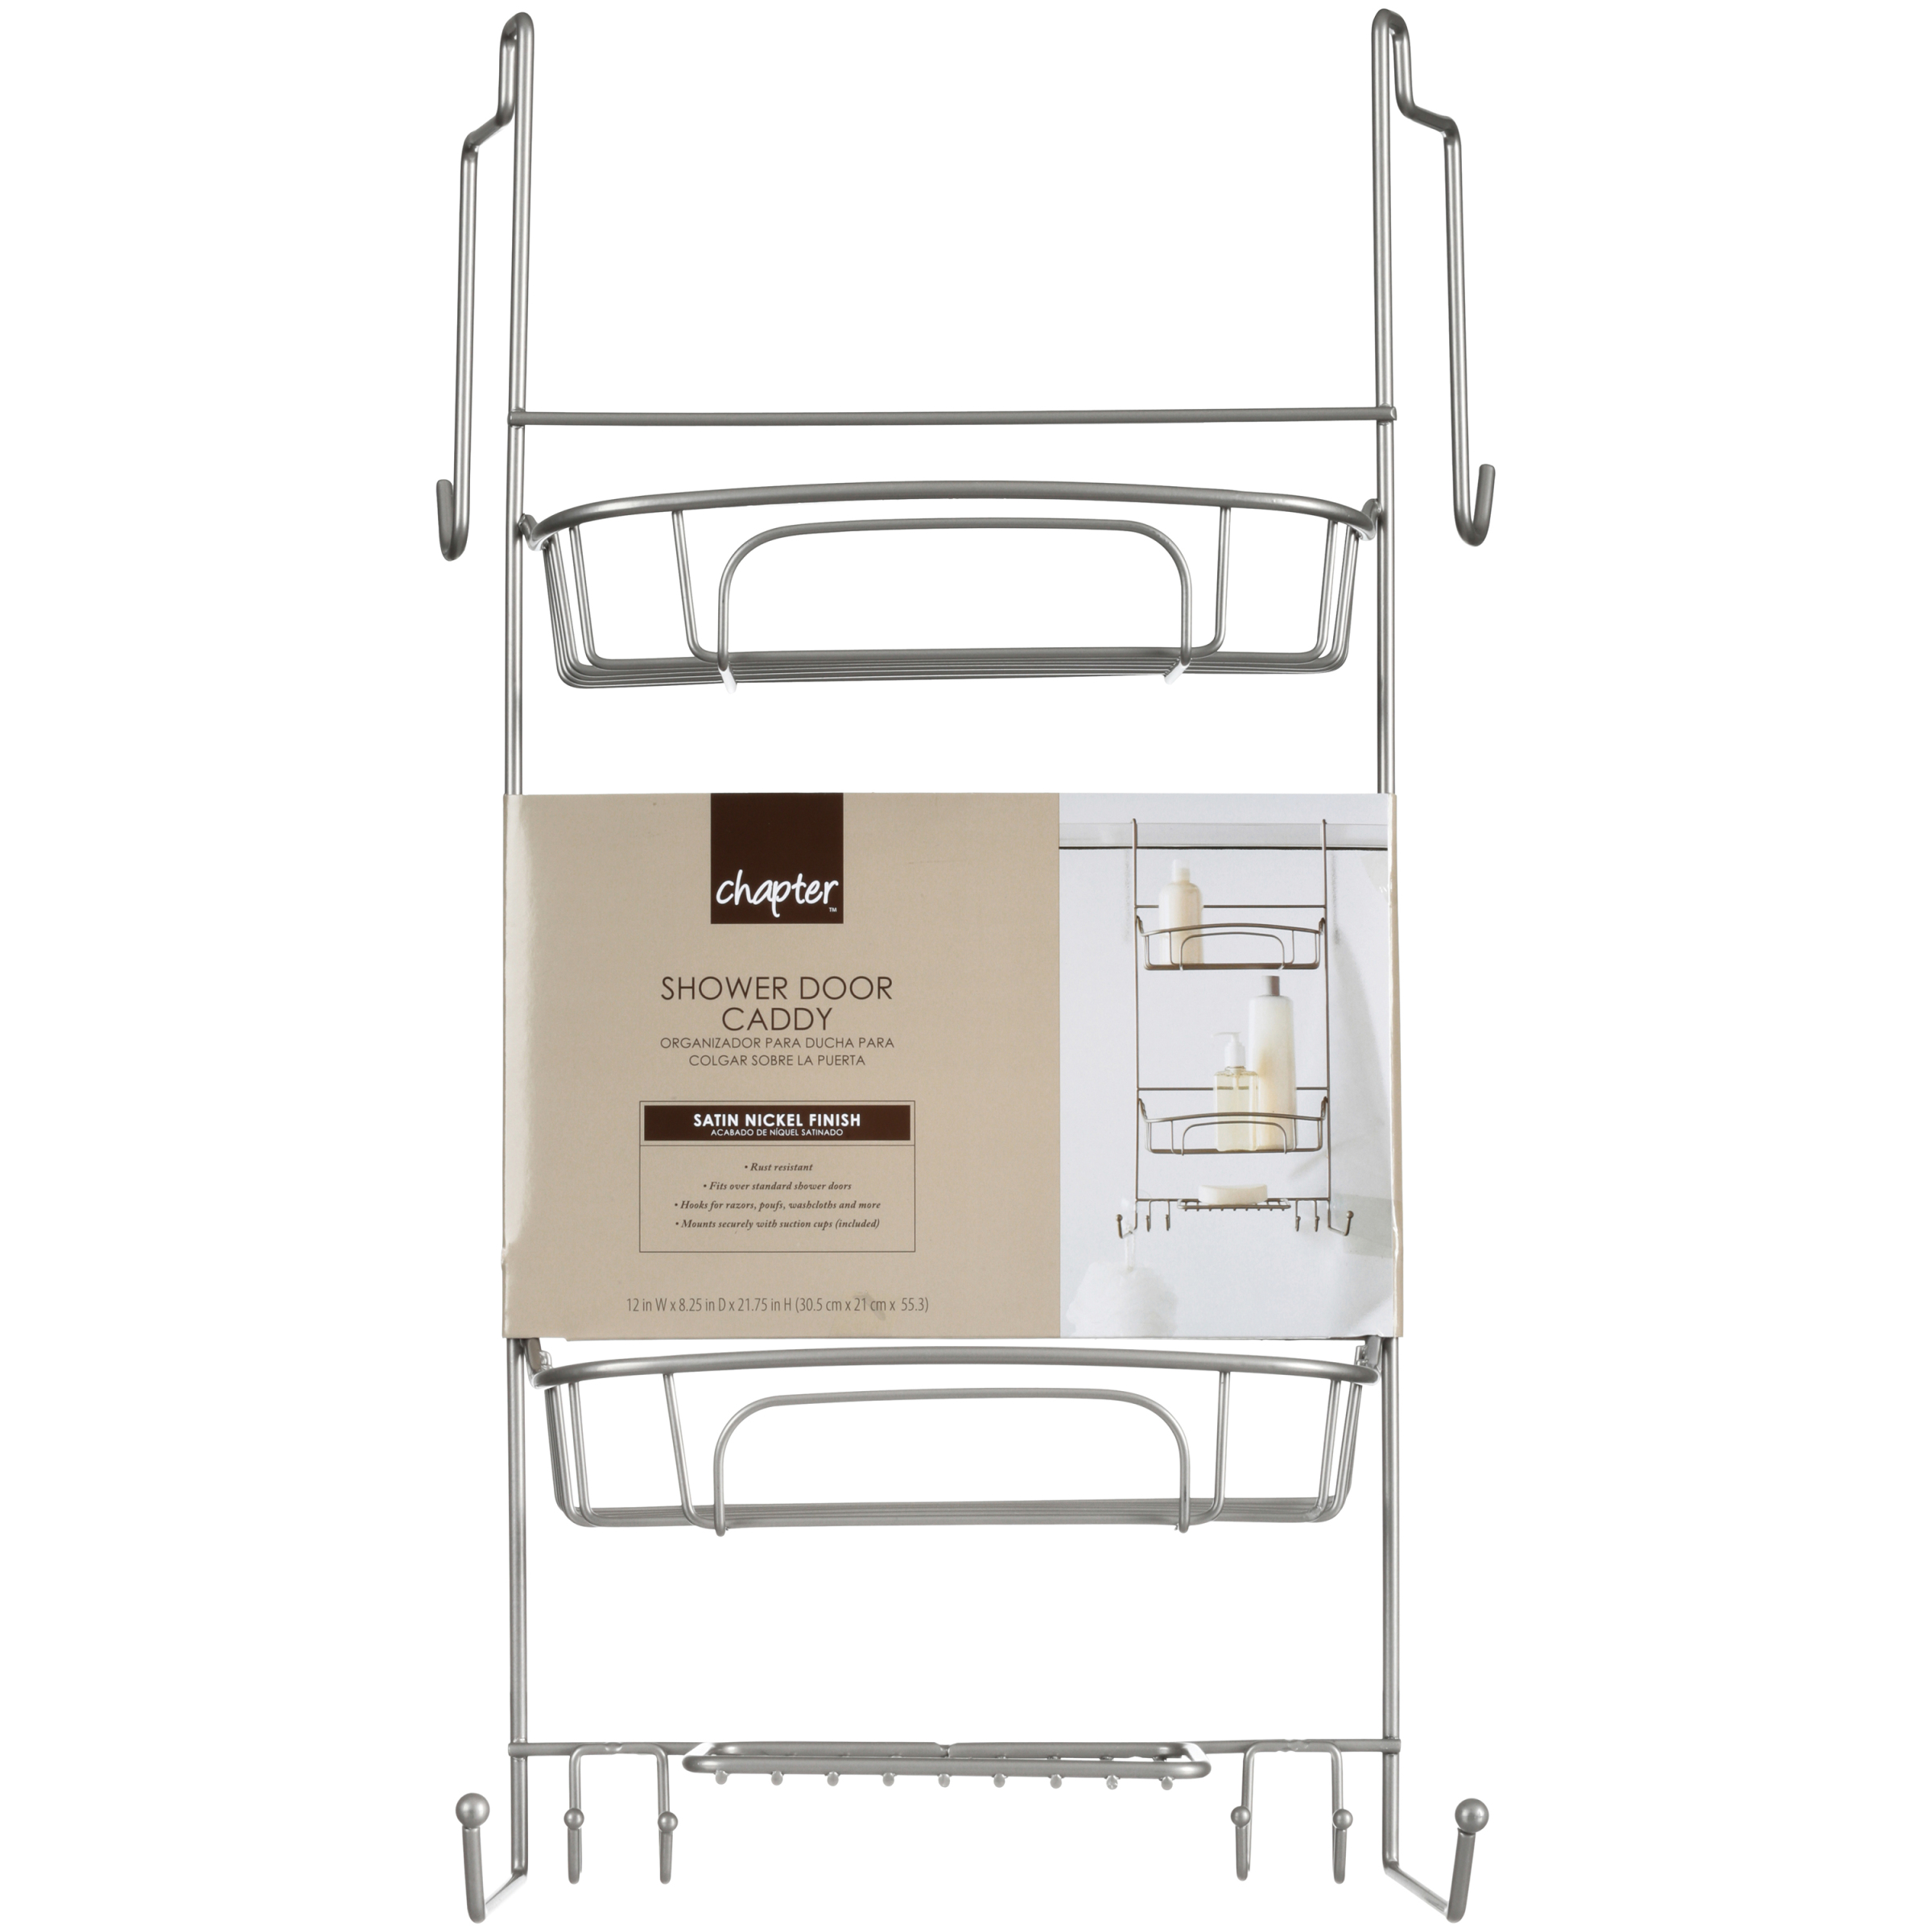 Chapter™ Shower Door Caddy - Walmart.com